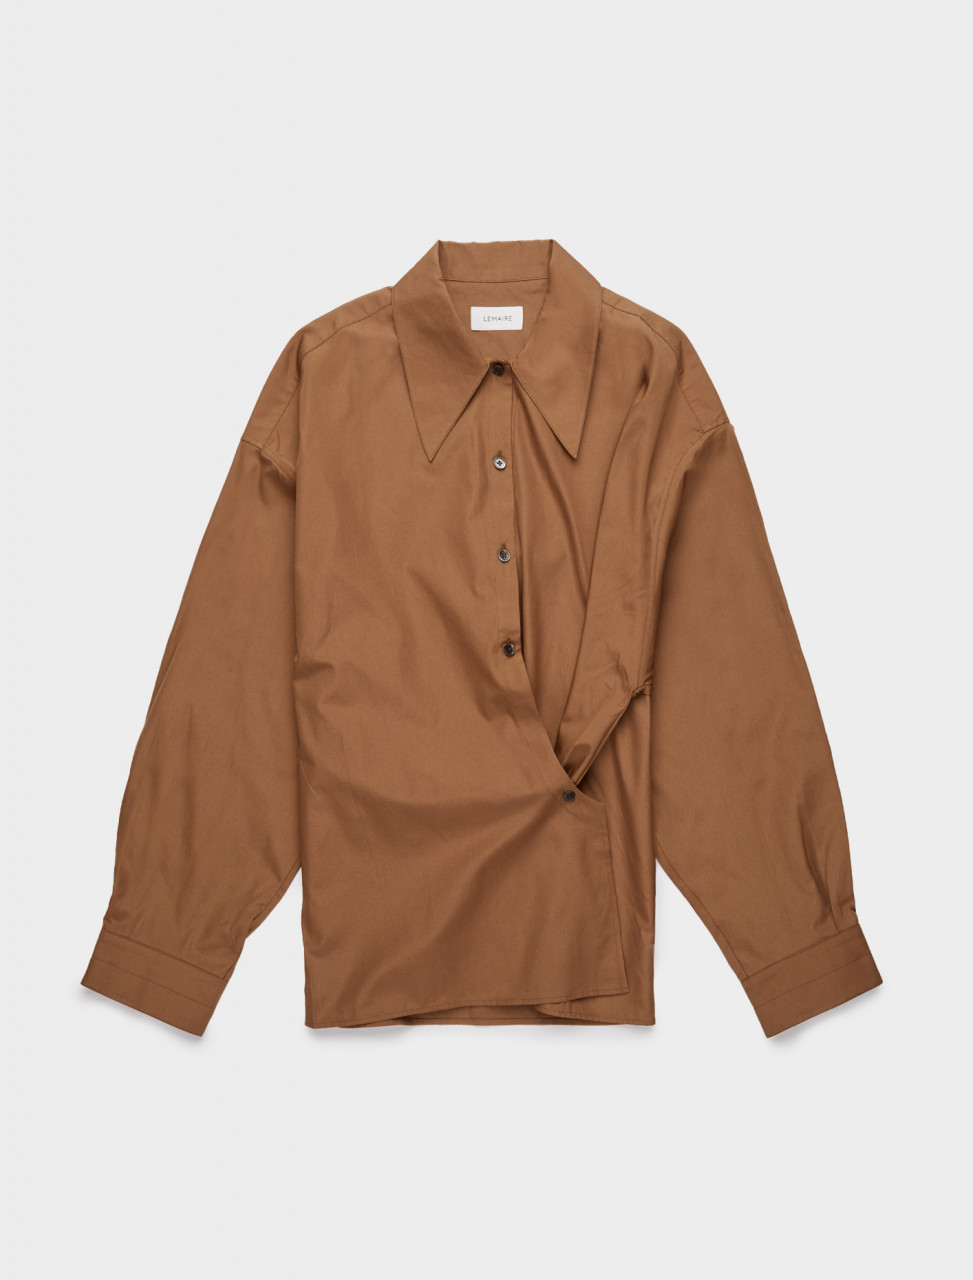 218-W-203-SH254-LF353-420 LEMAIRE TWISTED SHIRT TOBACCO